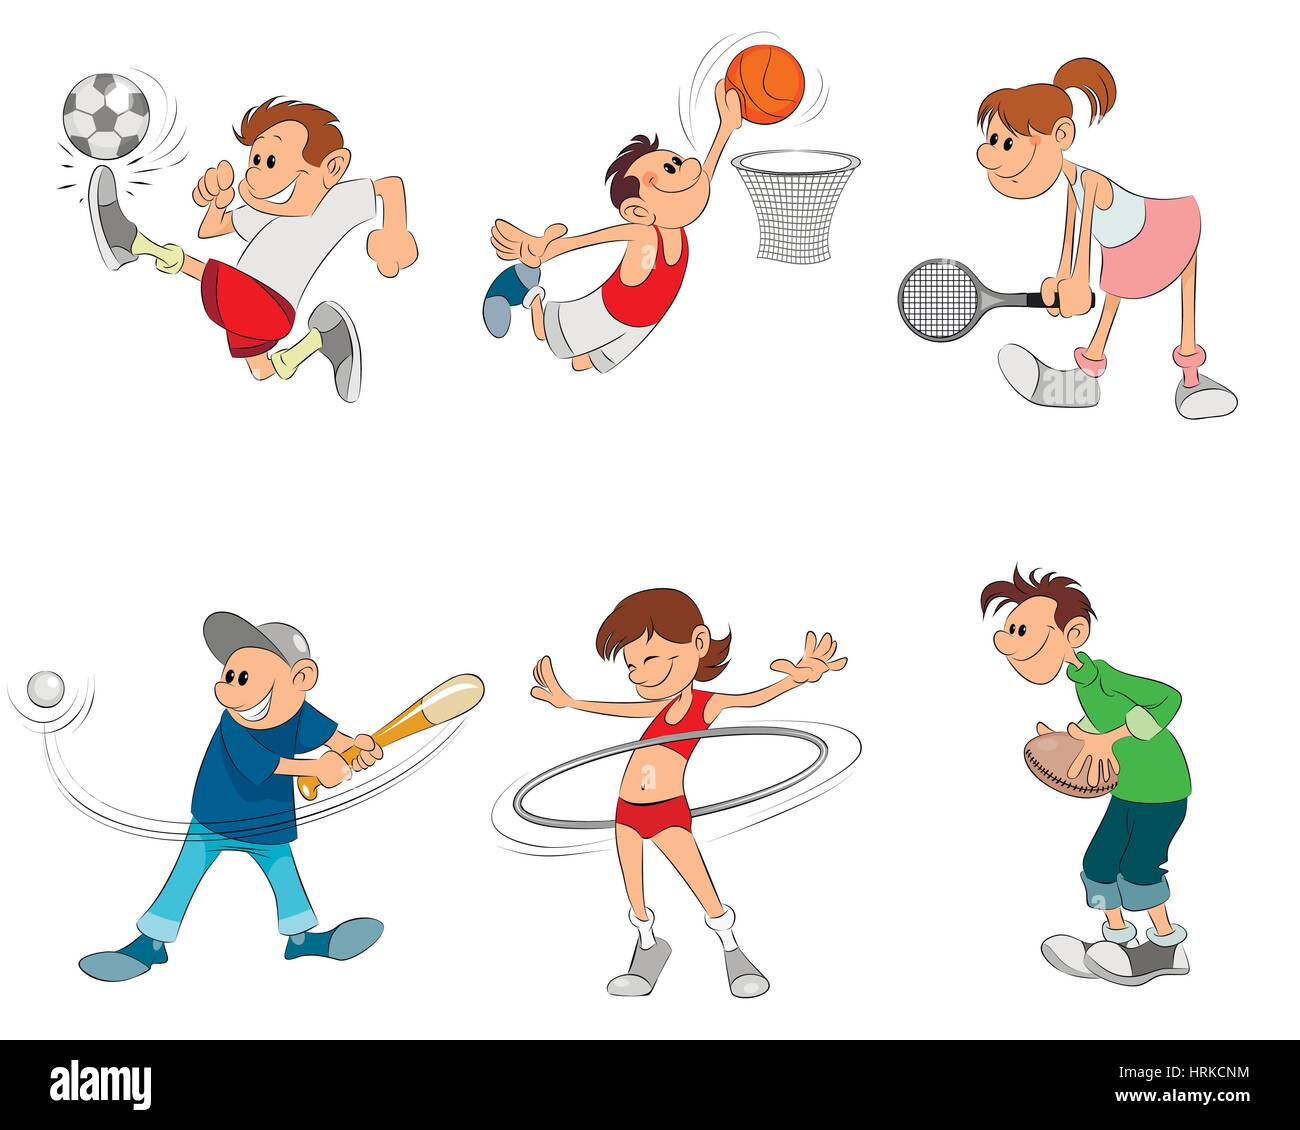 Vector illustration of a six children playing - Stock Image